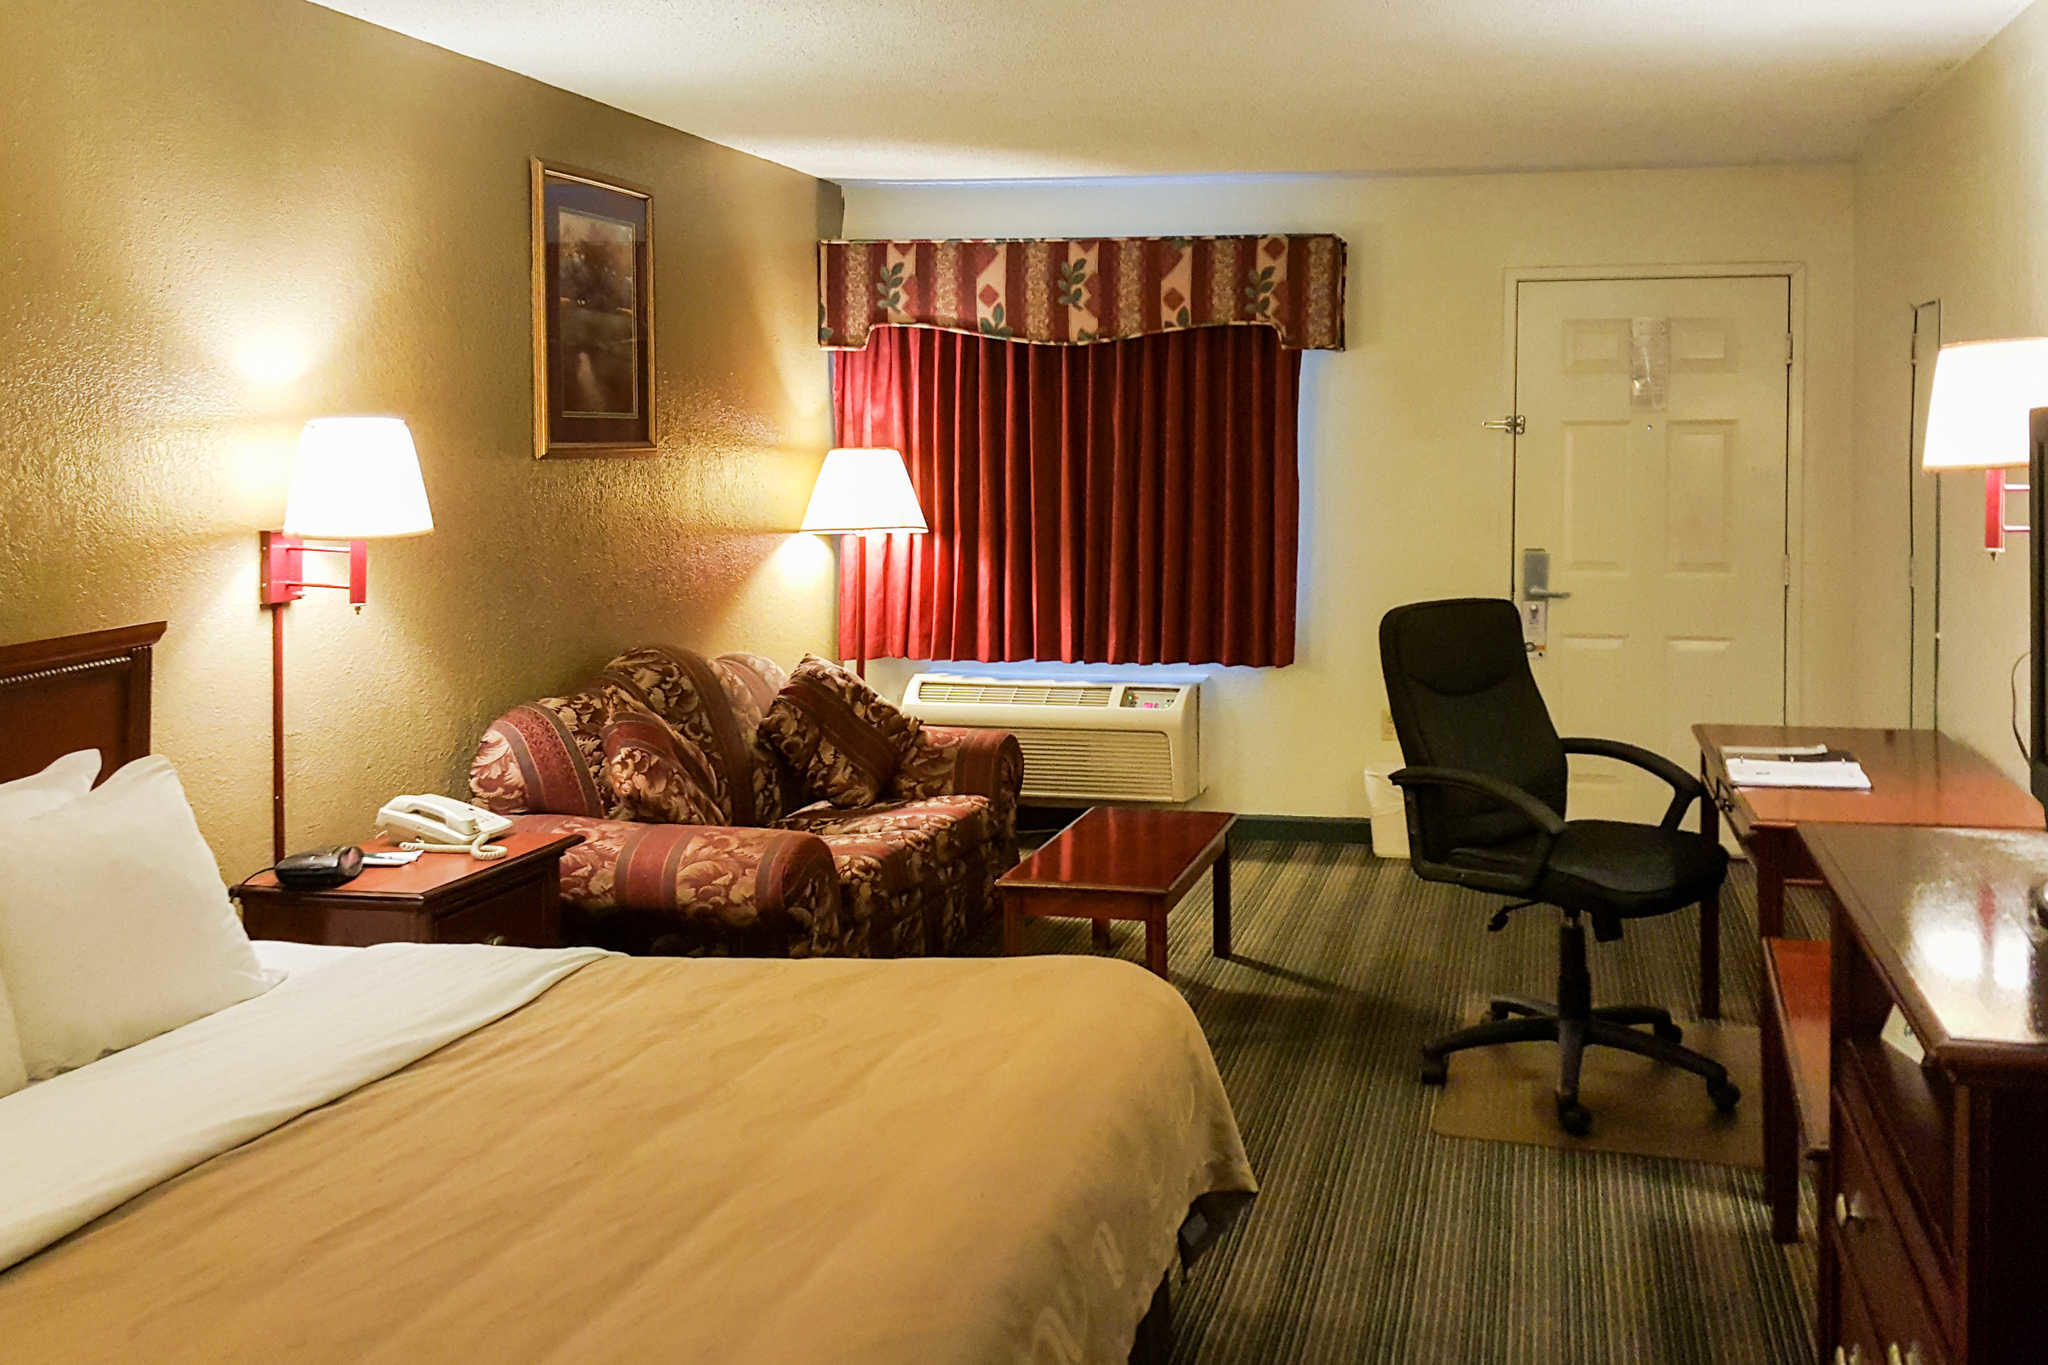 Quality Inn image 6